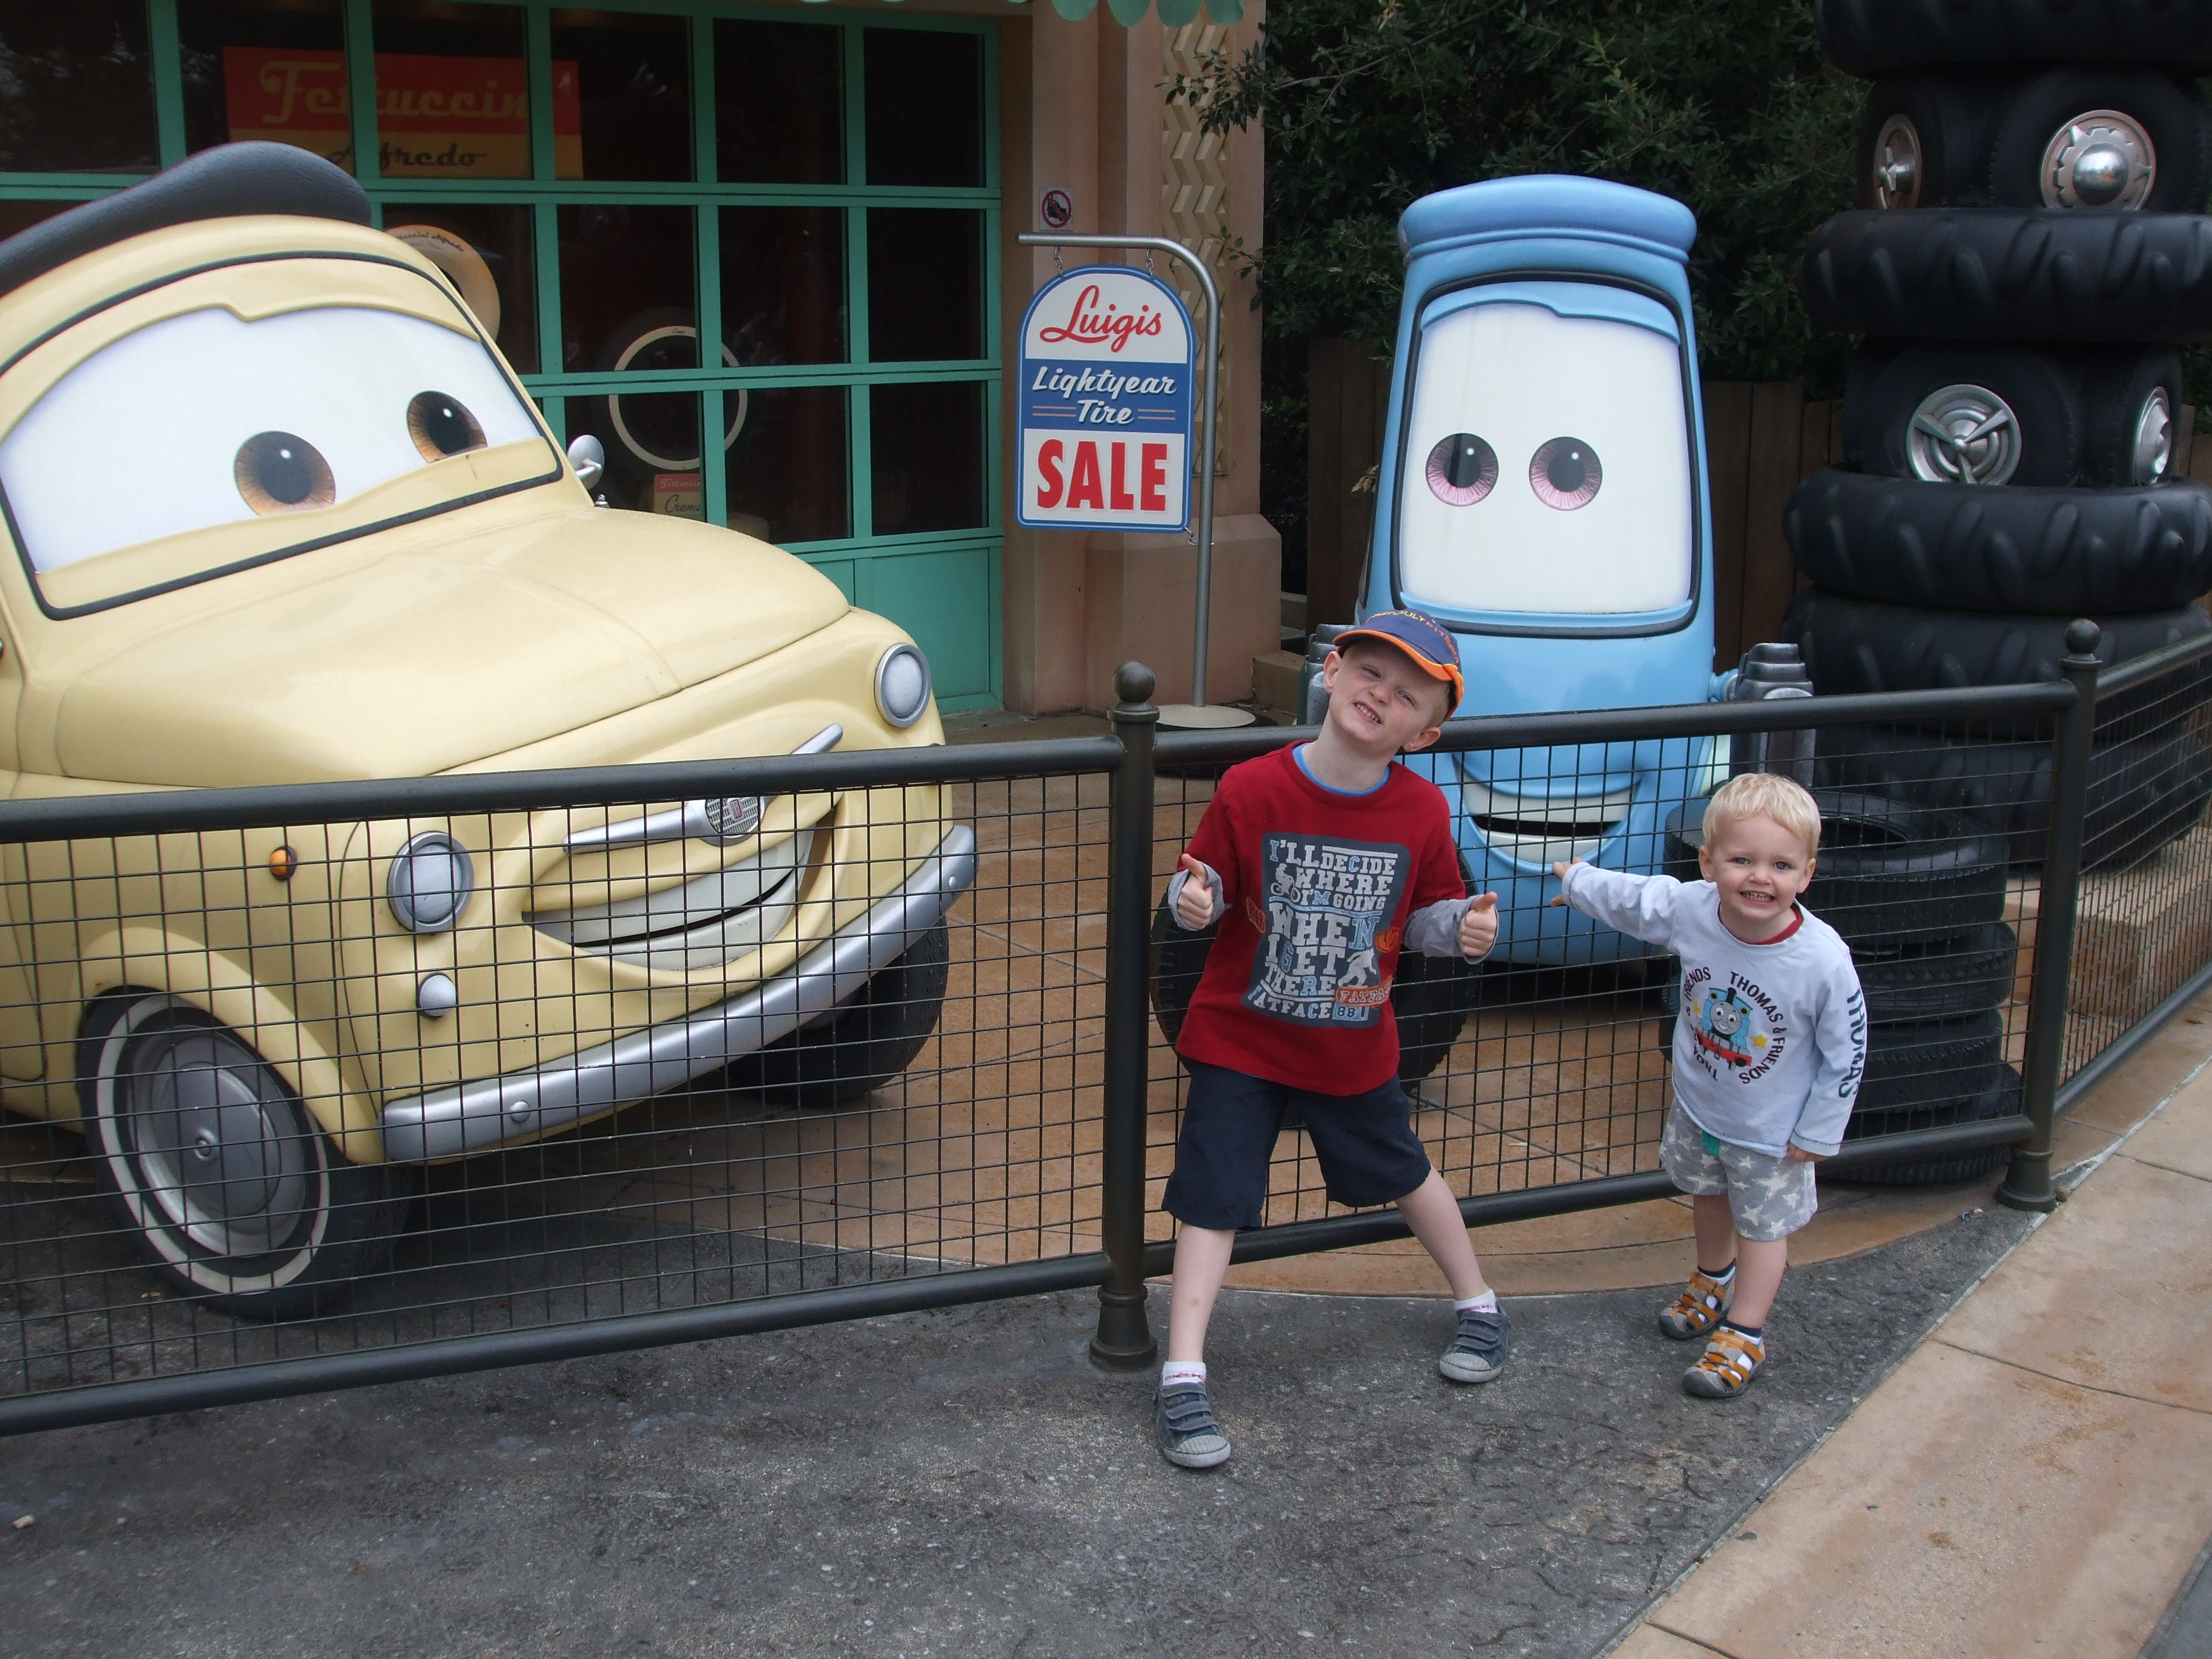 The Trunki Files Guide To Disneyland Paris The Trunki Files